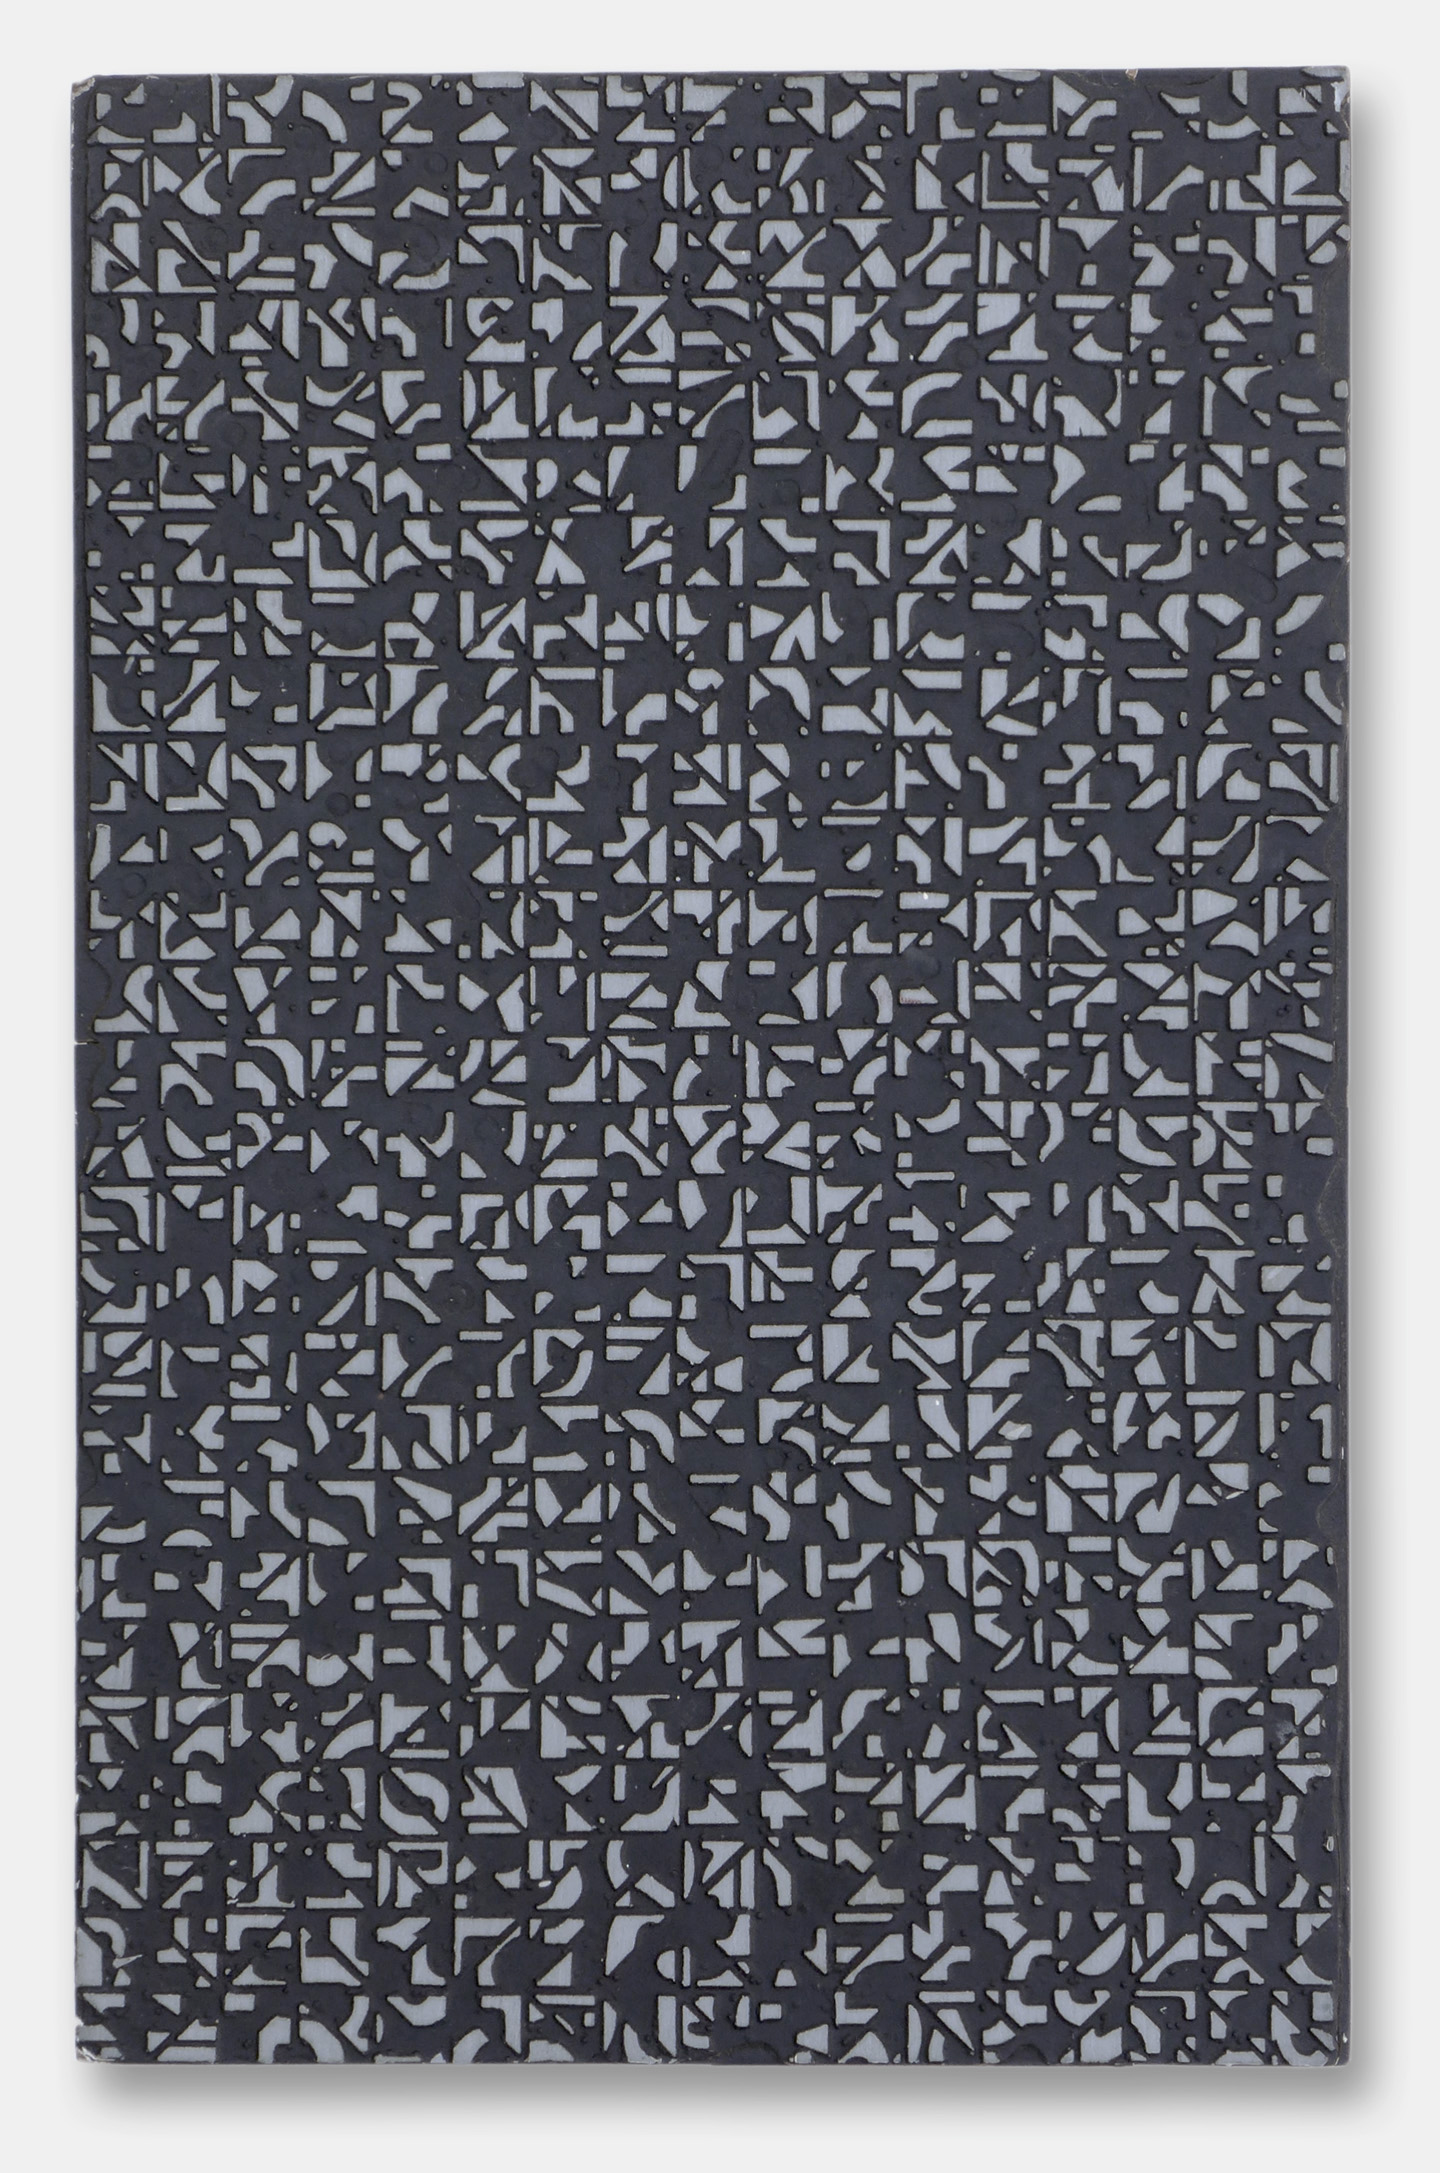 Norman Ives, Series IV-6, 1965, cast metal relief, 13.25x8.5x1.5